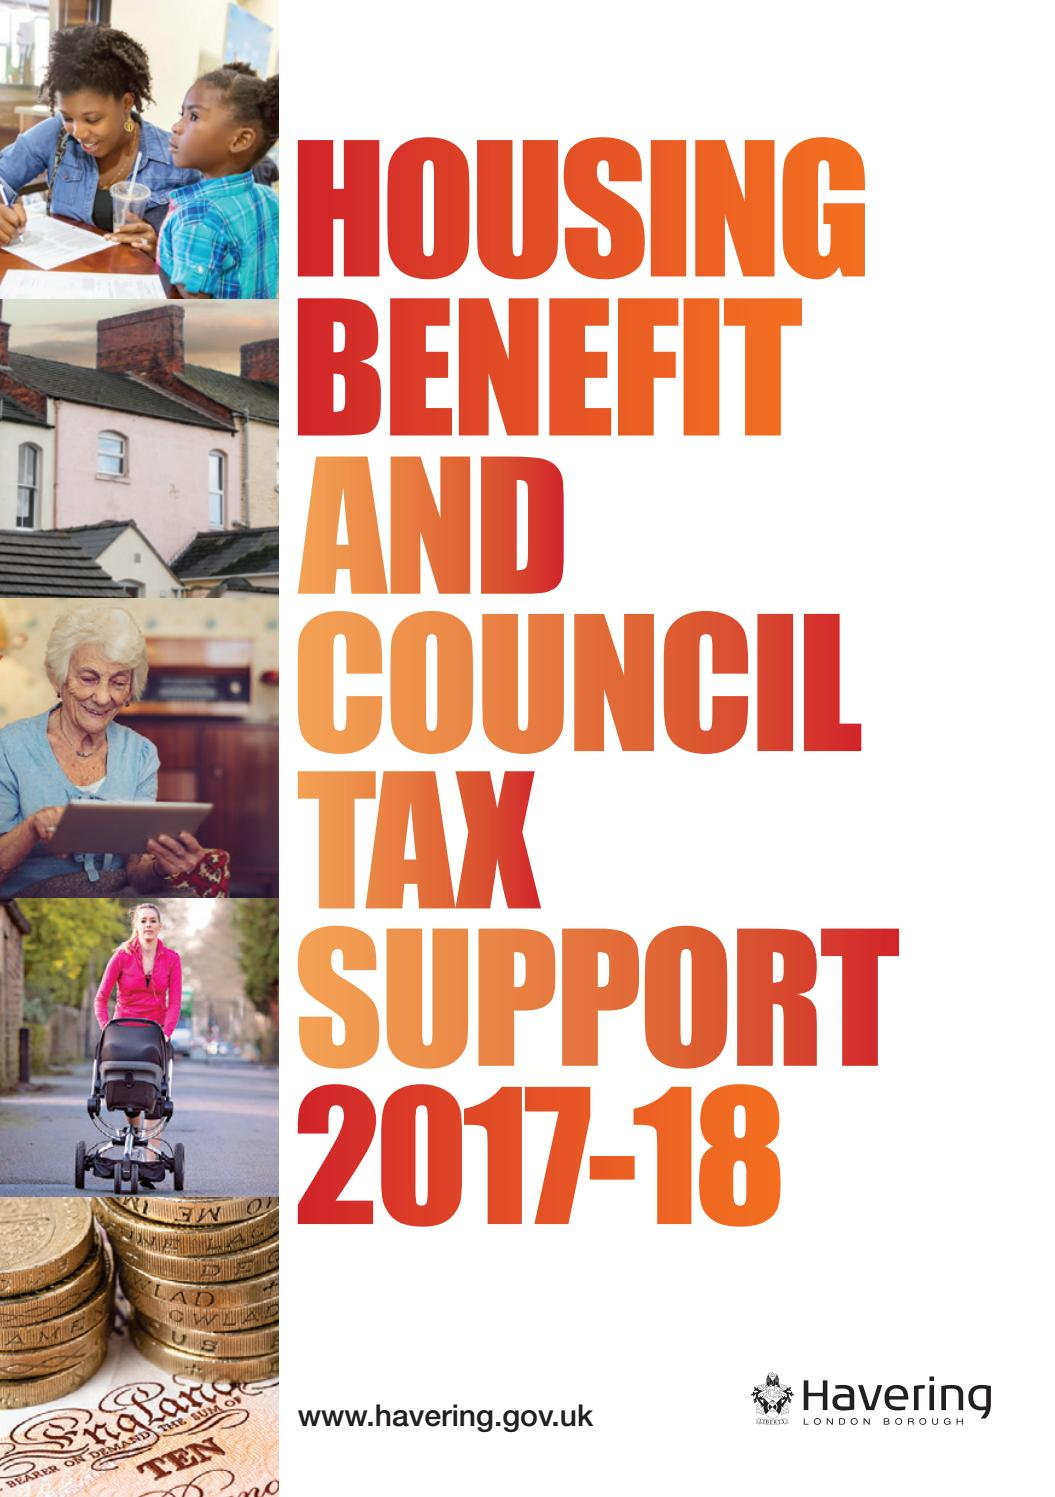 havering's housing benefit and council tax support for 2017-18 by